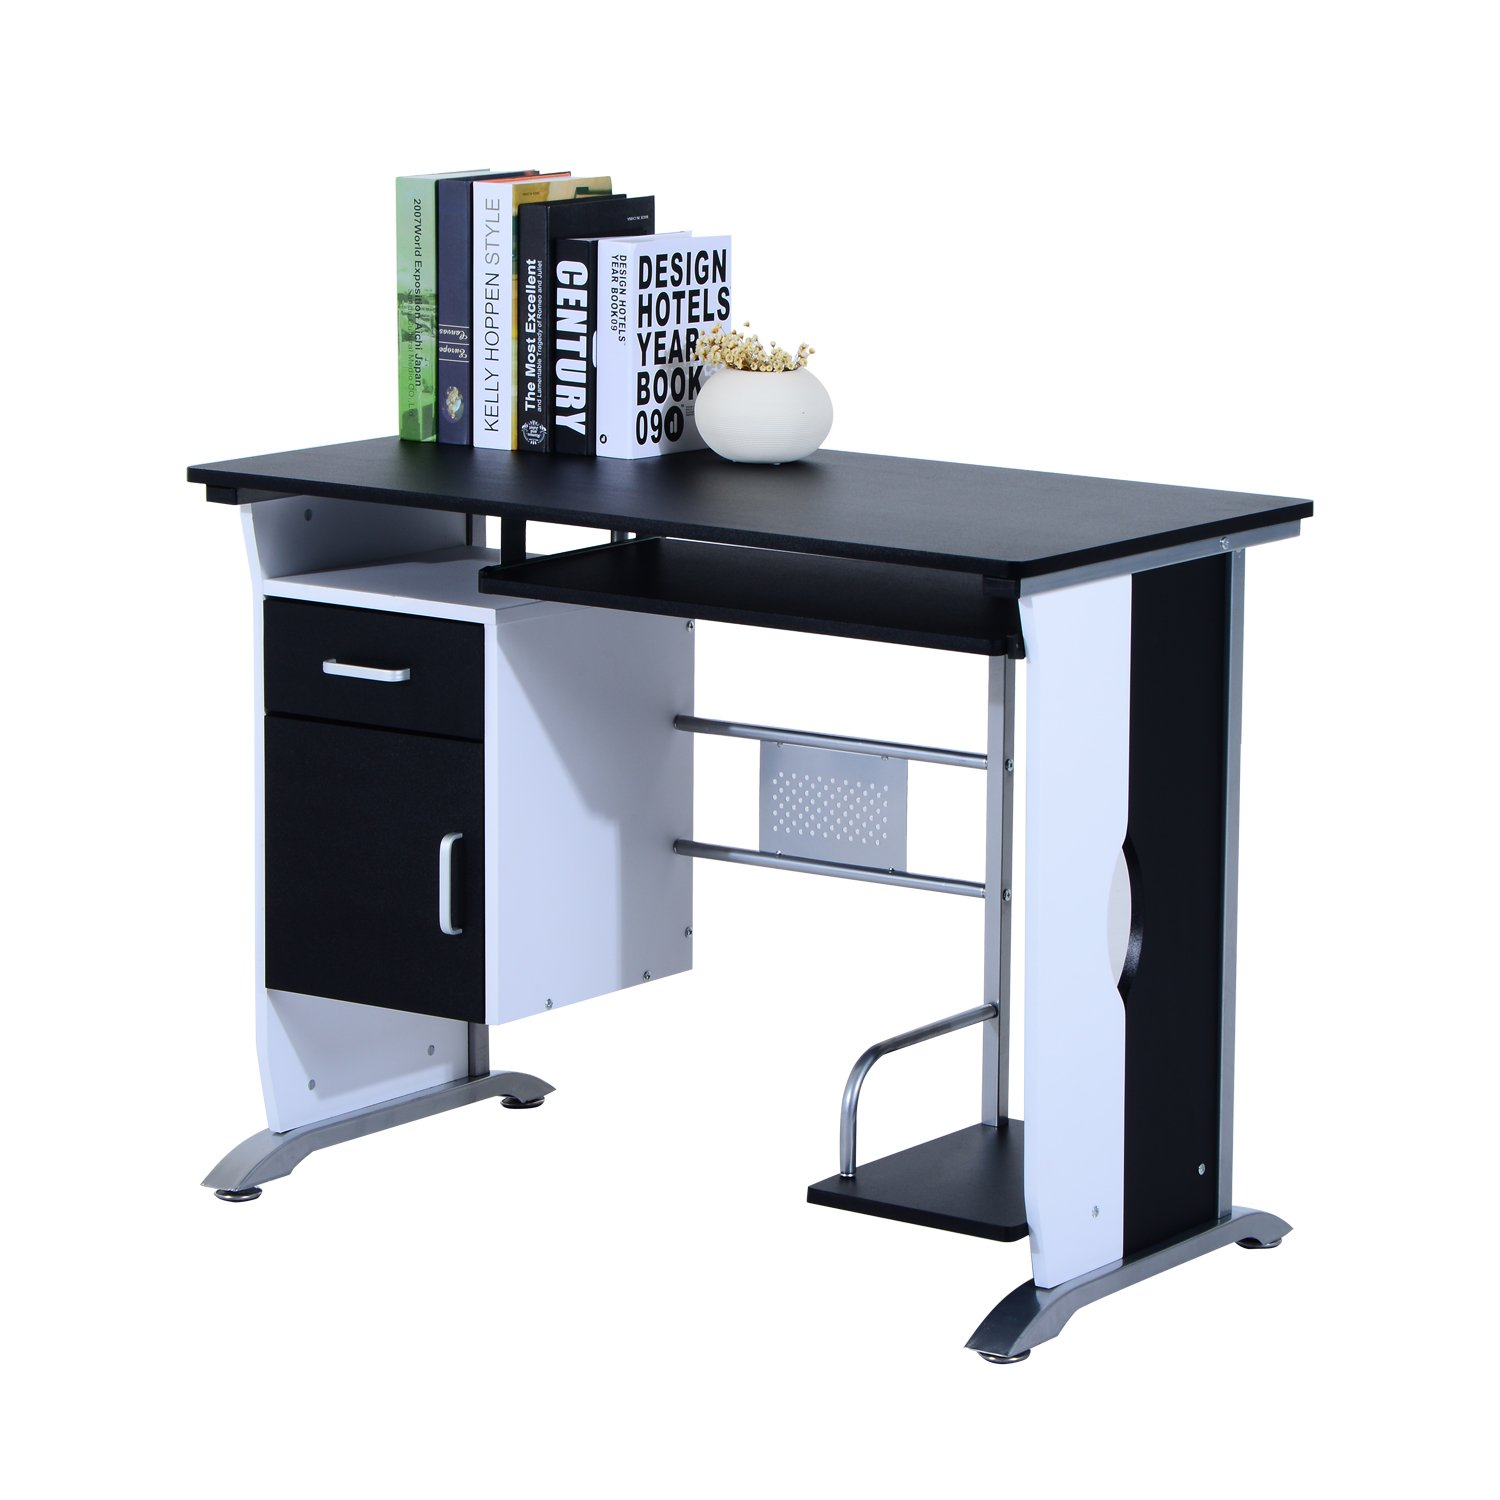 products table desk top keyboard computer modern shelf furniture glass goplus new office